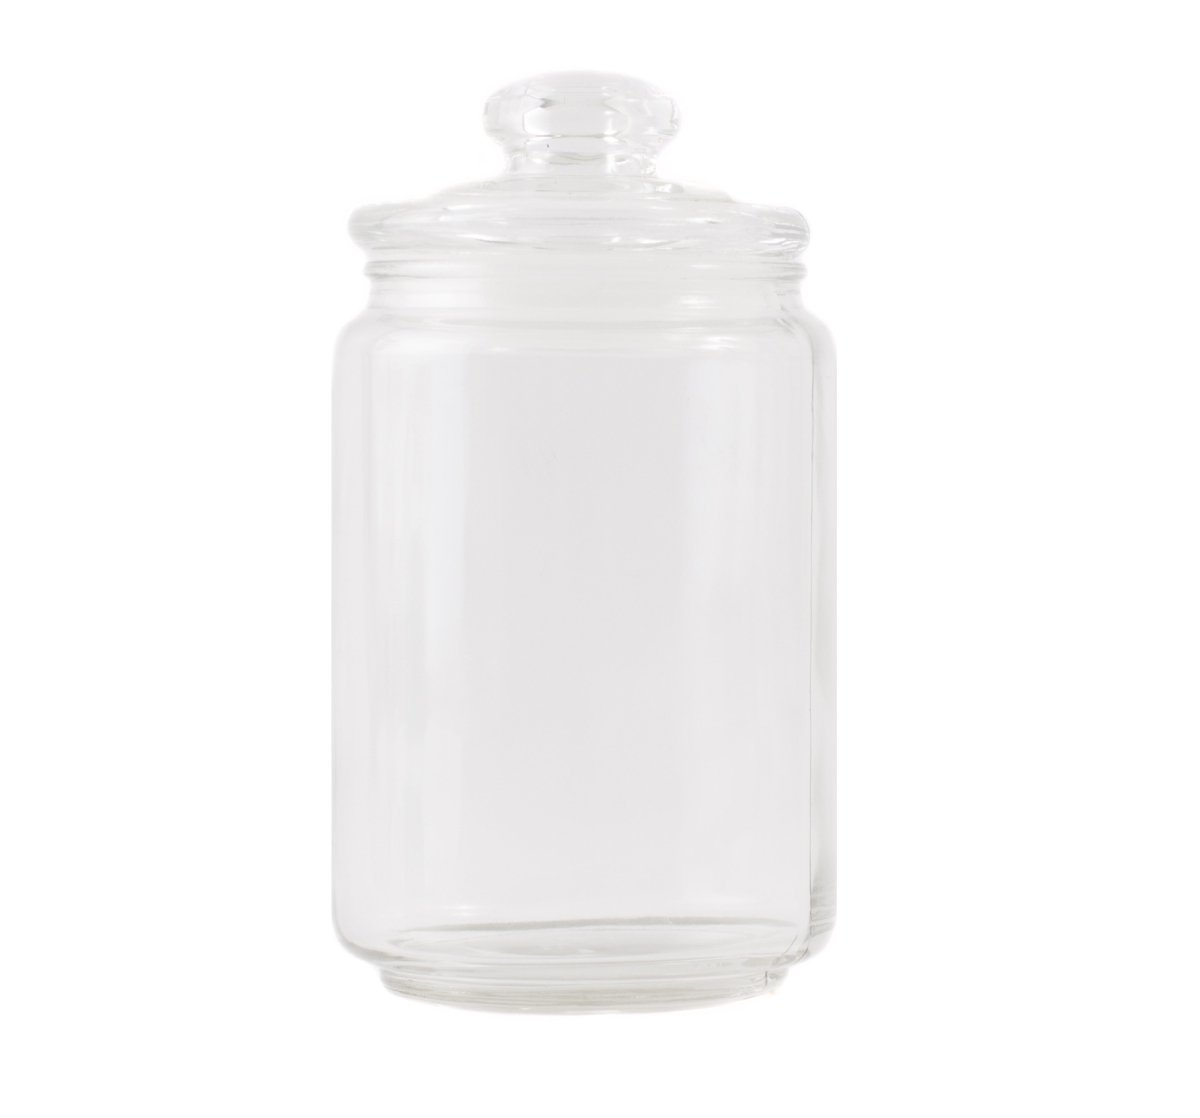 600ml Glass Candle Jar with Lid - Mystic Moments UK